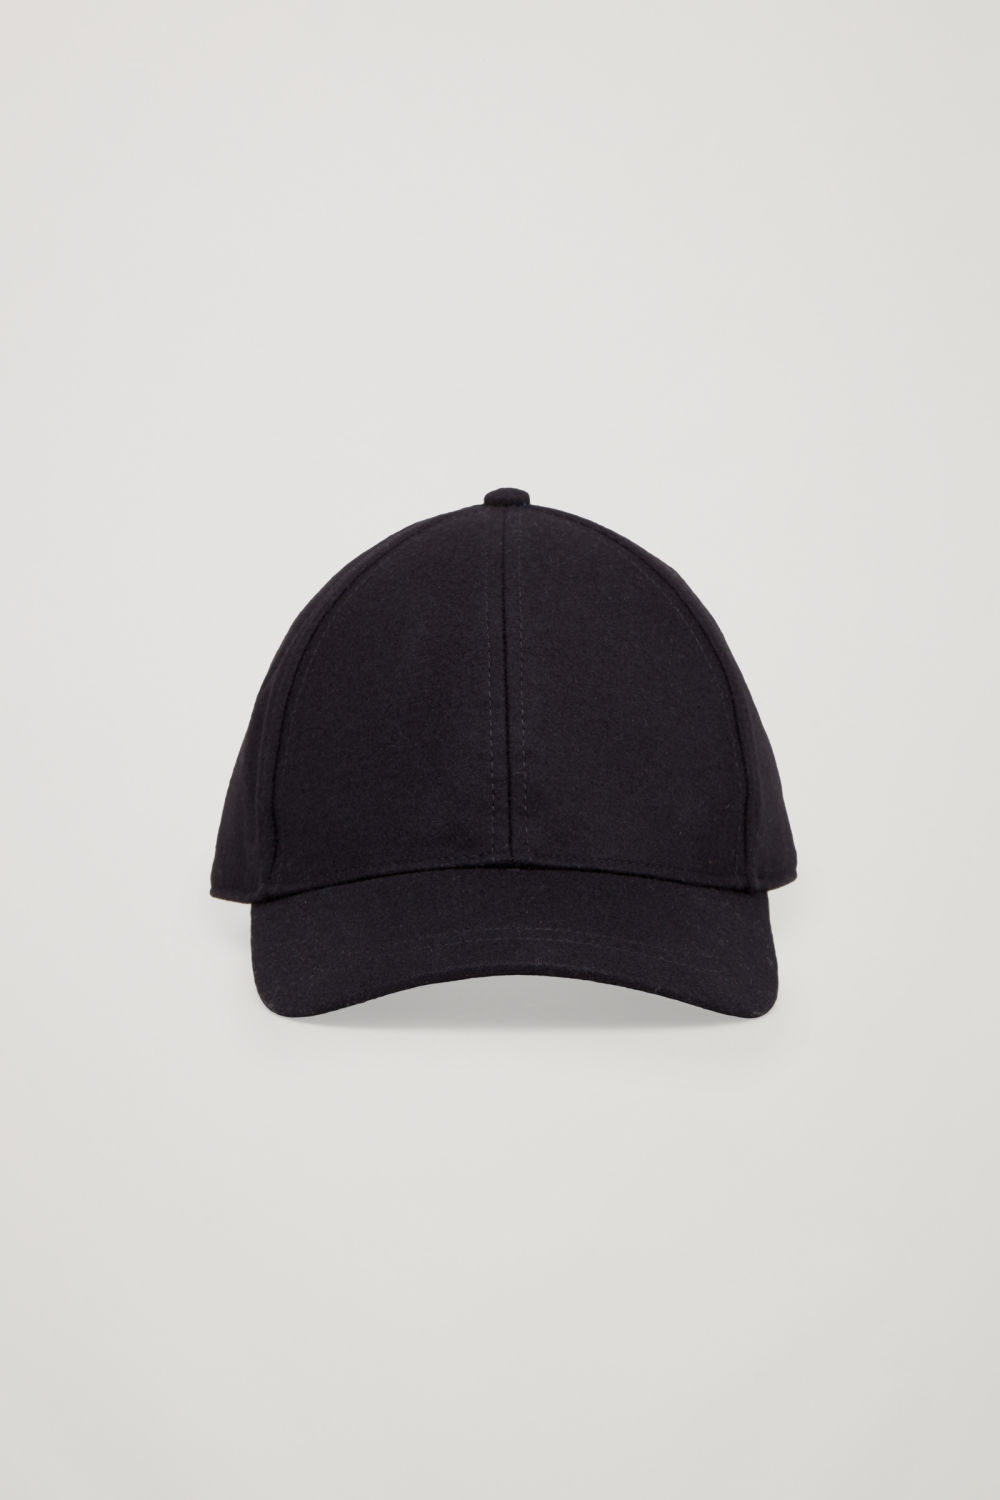 코스 COS WOOL BASEBALL CAP,Black